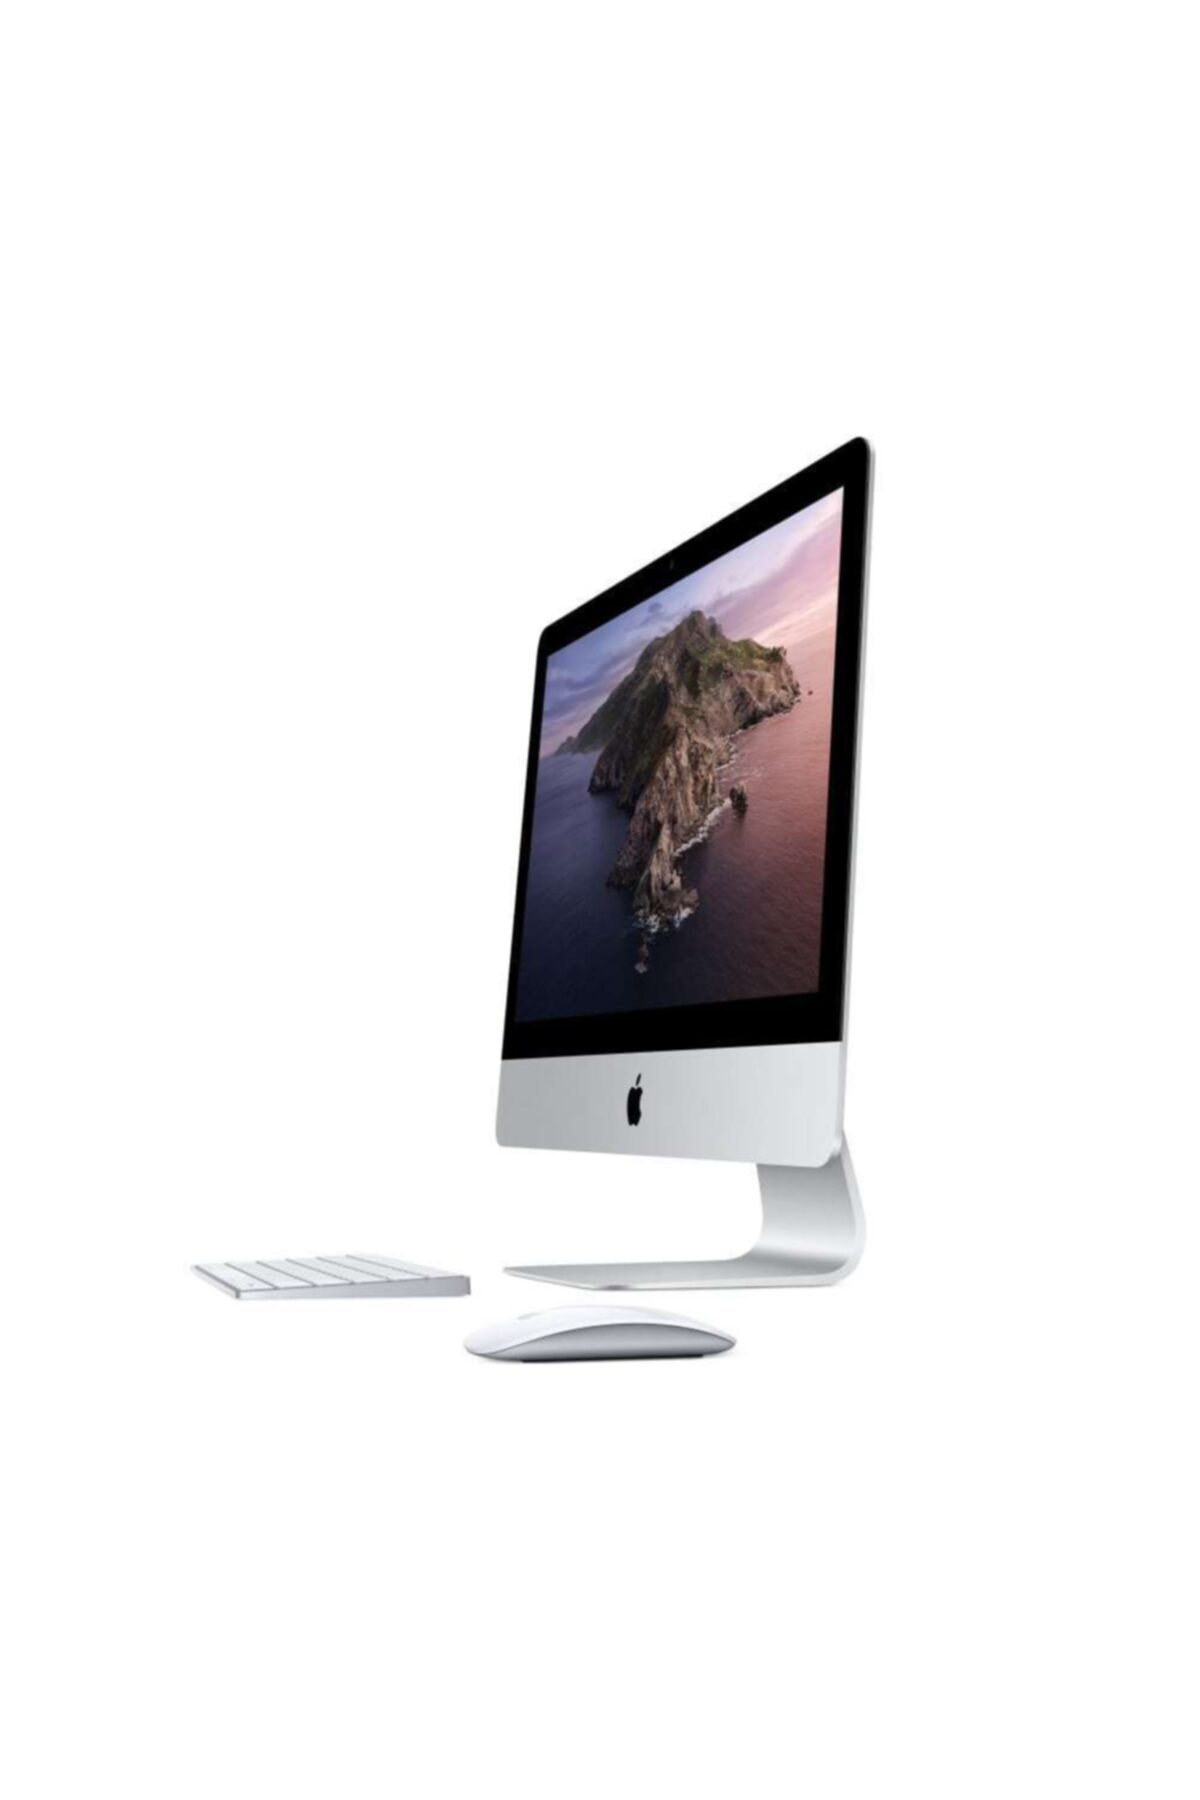 Apple Imac 21.5 Inç Dc I5 2.3ghz/8gb/256gb Ssd Intel Iris Plus 640 Mhk03tu/a 2